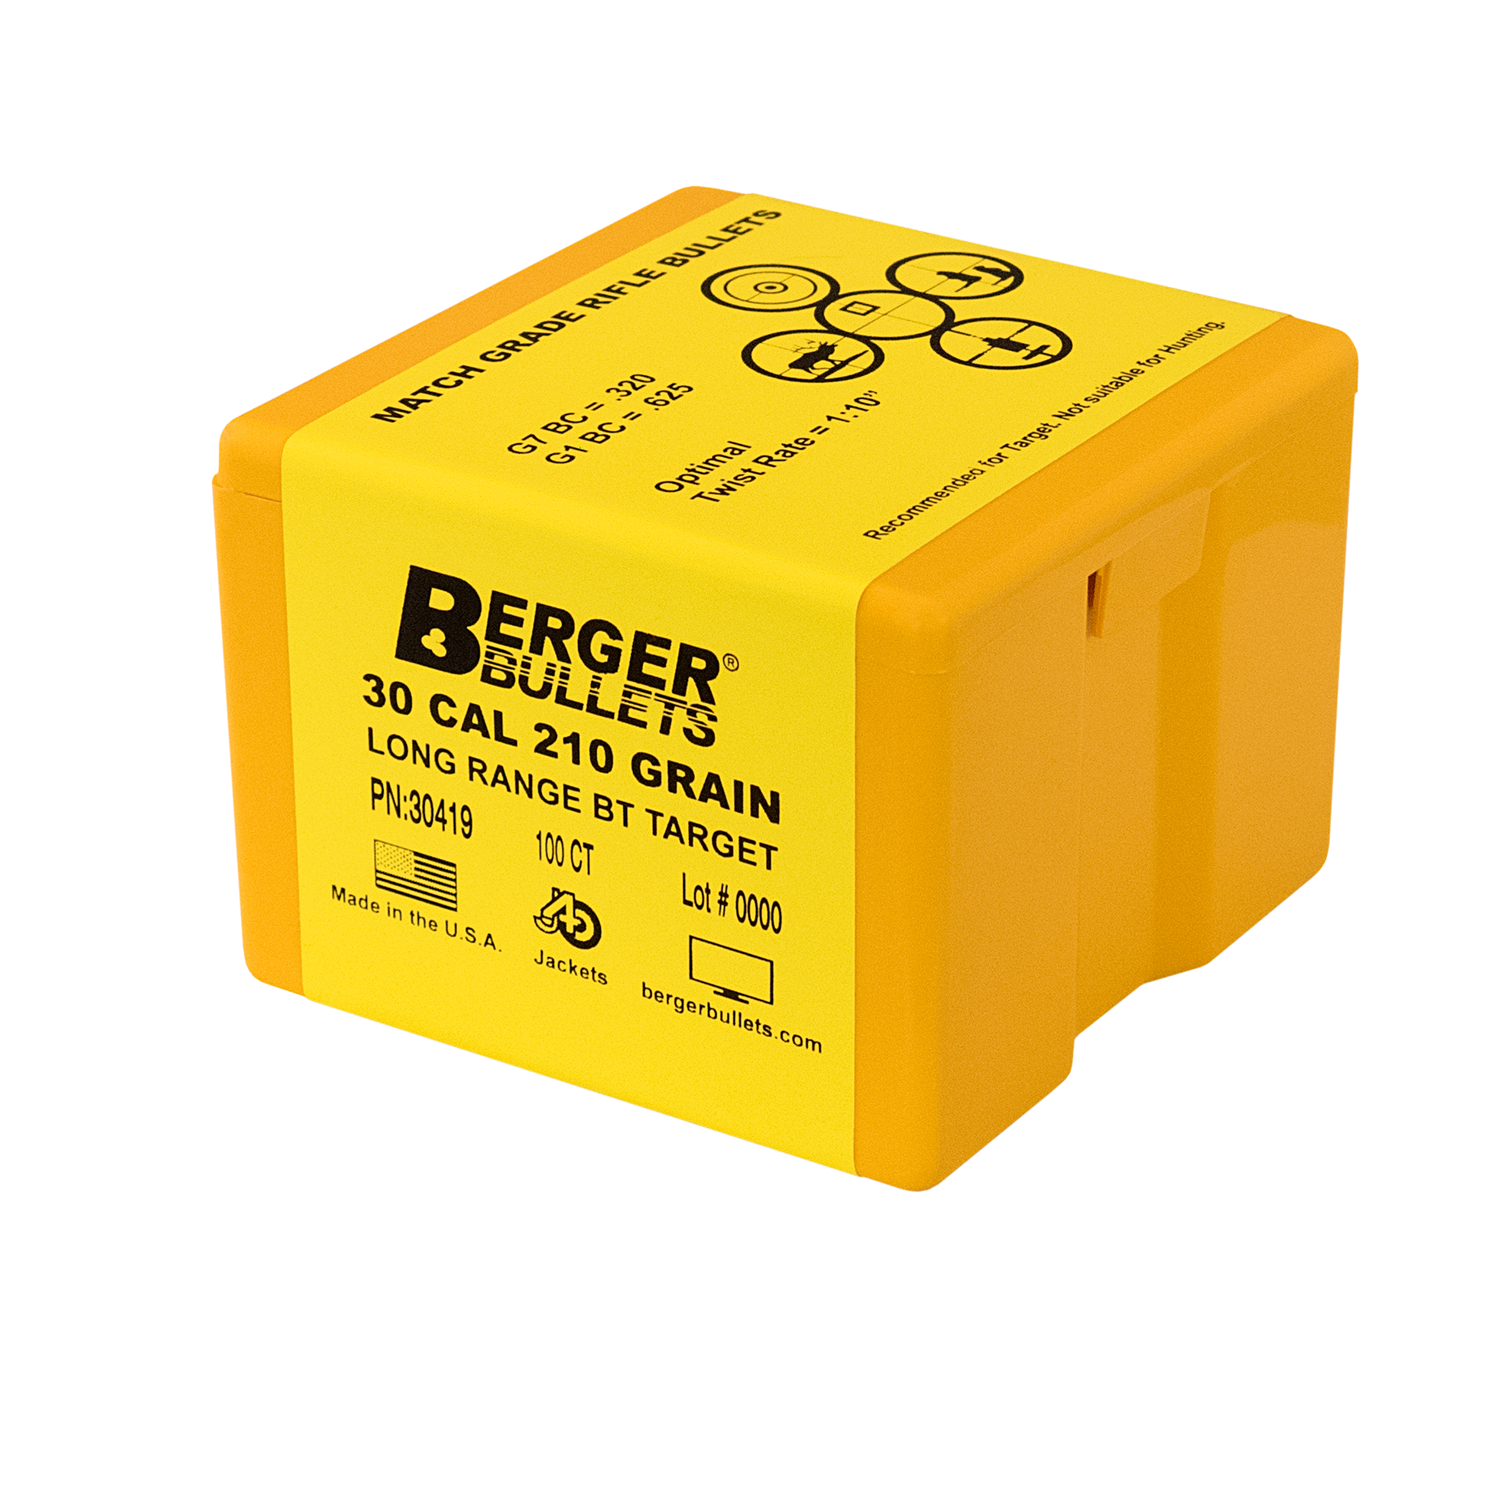 Berger 30 Cal 210 Gr Long Range BT Target Bullets (100 Ct)